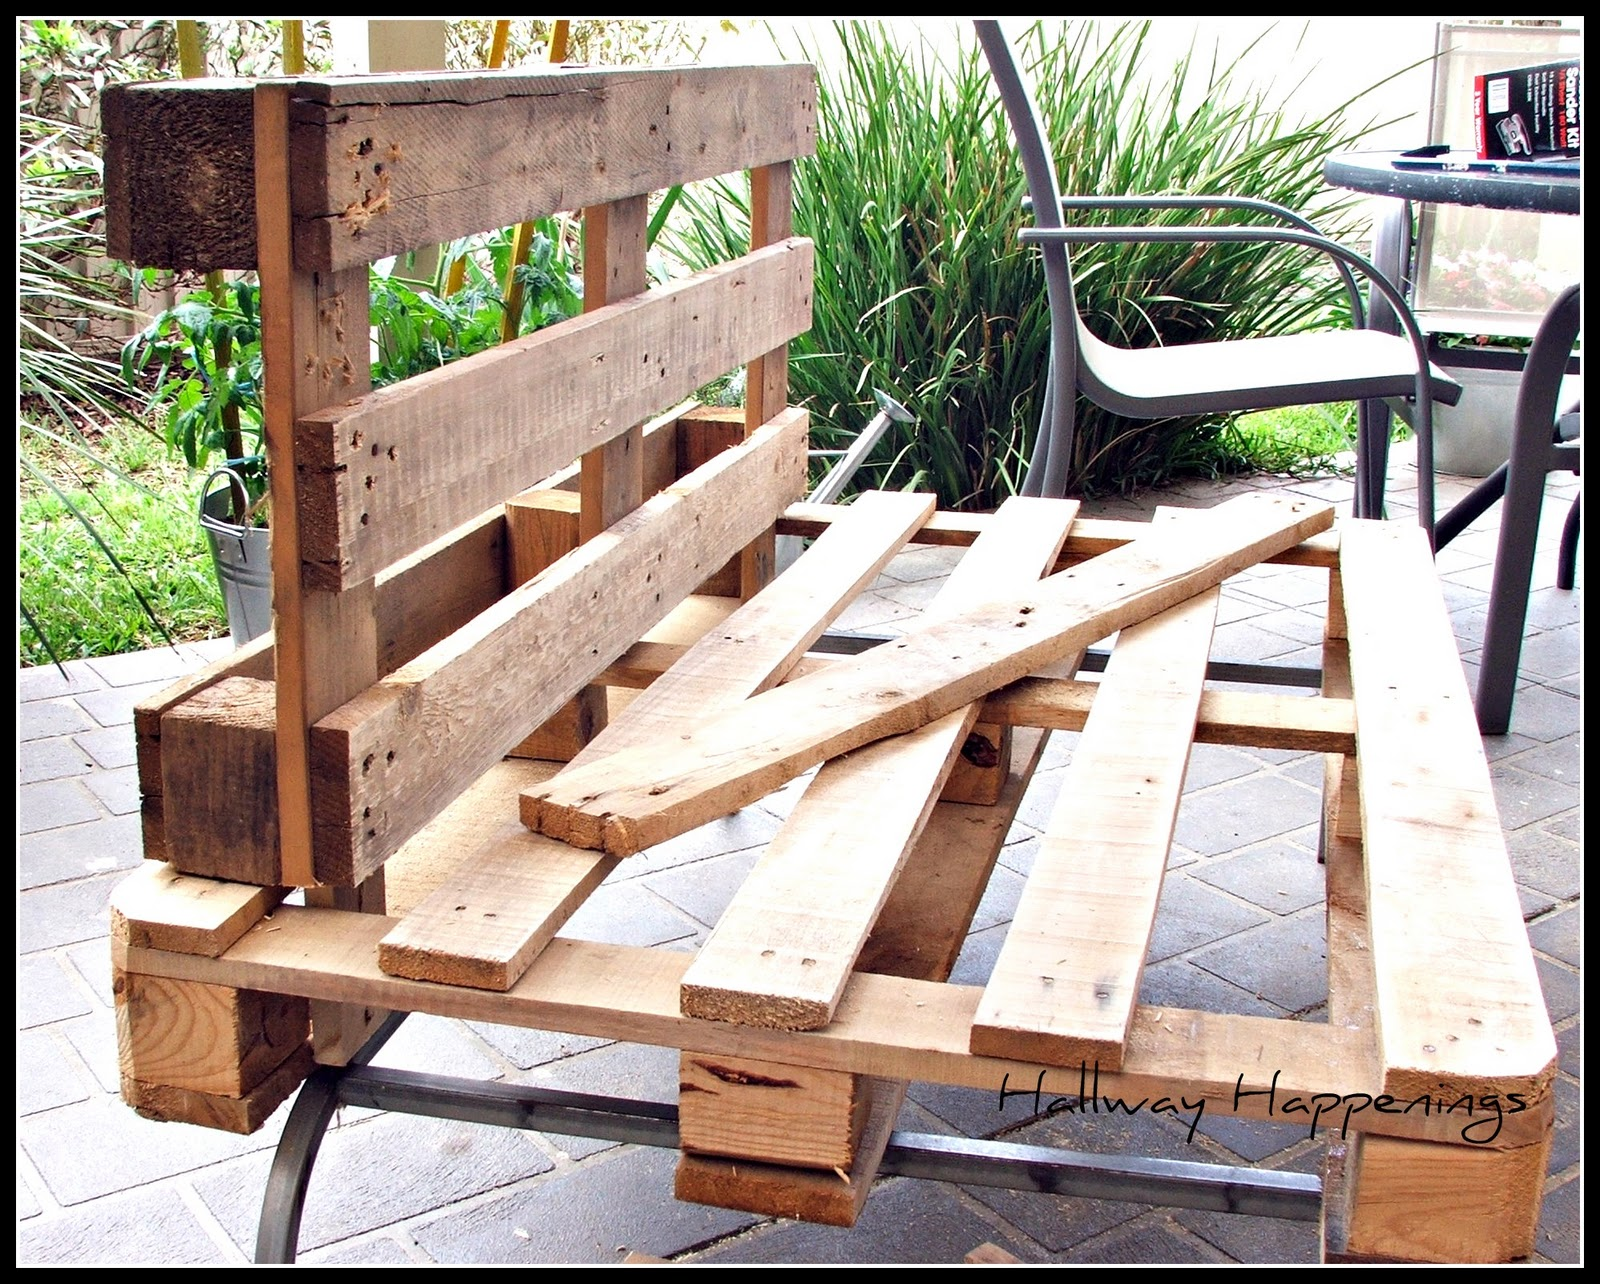 Hallway Happenings: Pallets Become Outdoor Furniture